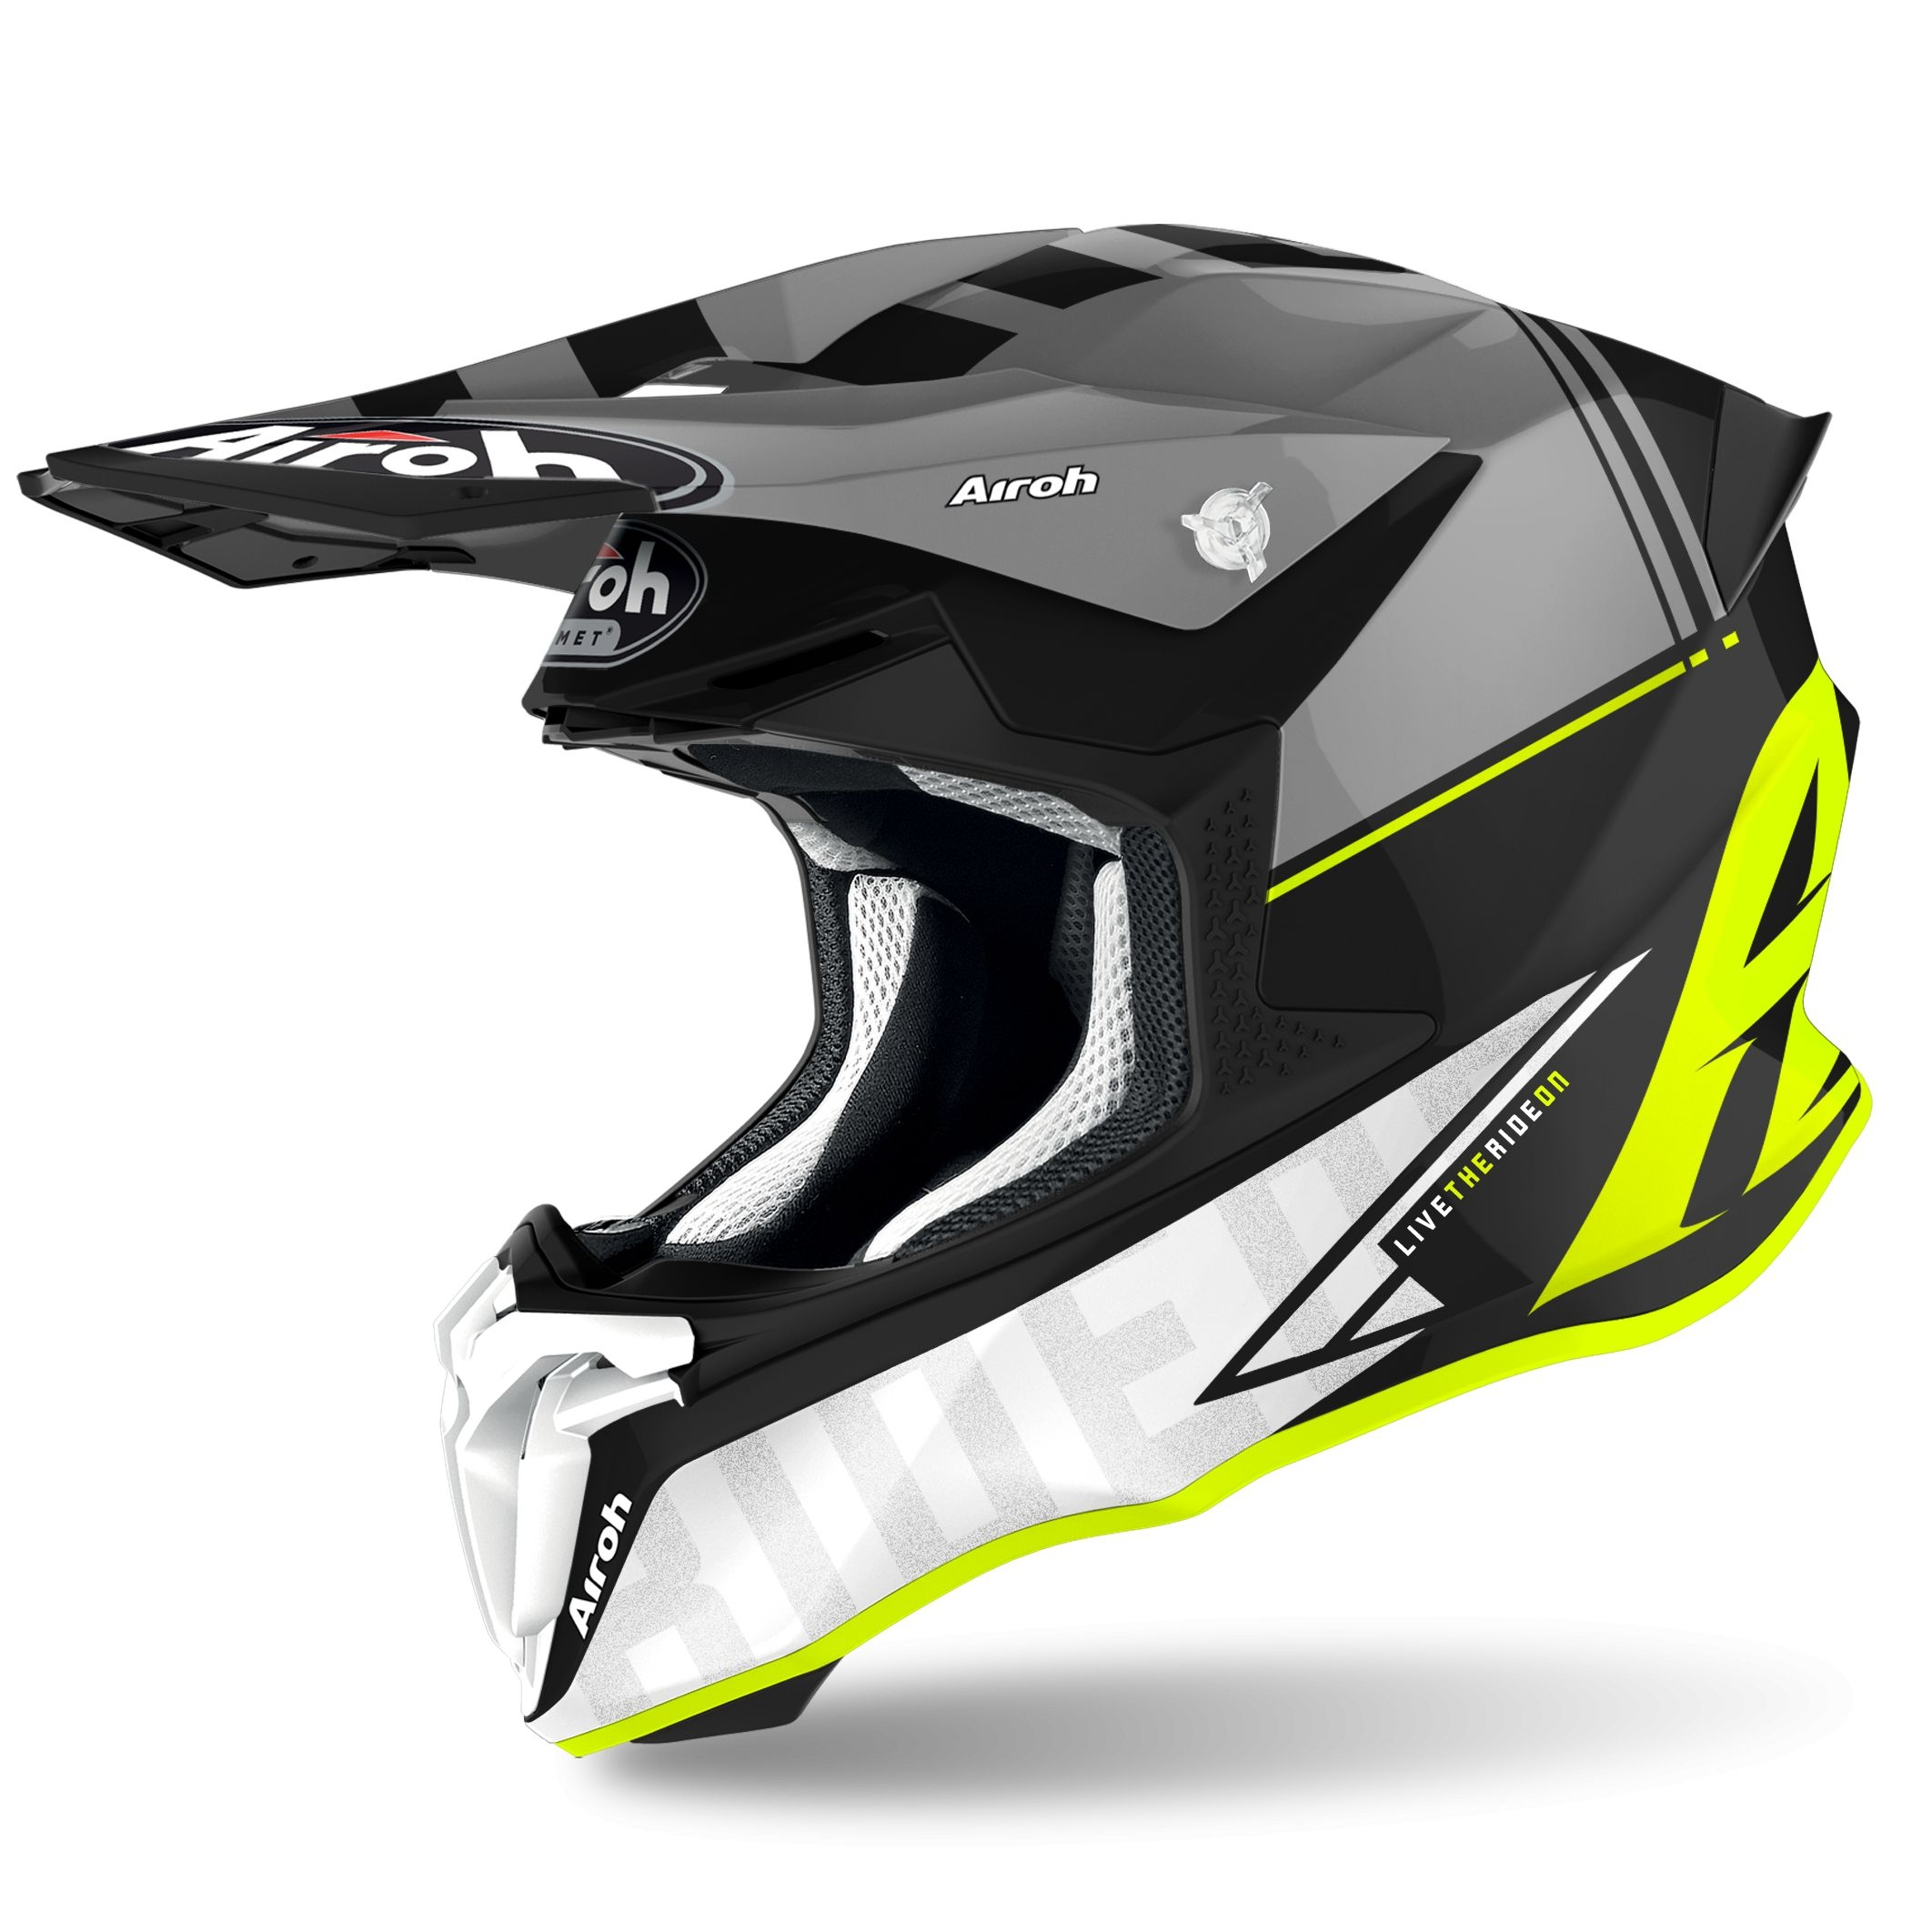 Casco Airoh cross enduro TWIST 2.0 TECH YELLOW matt 1